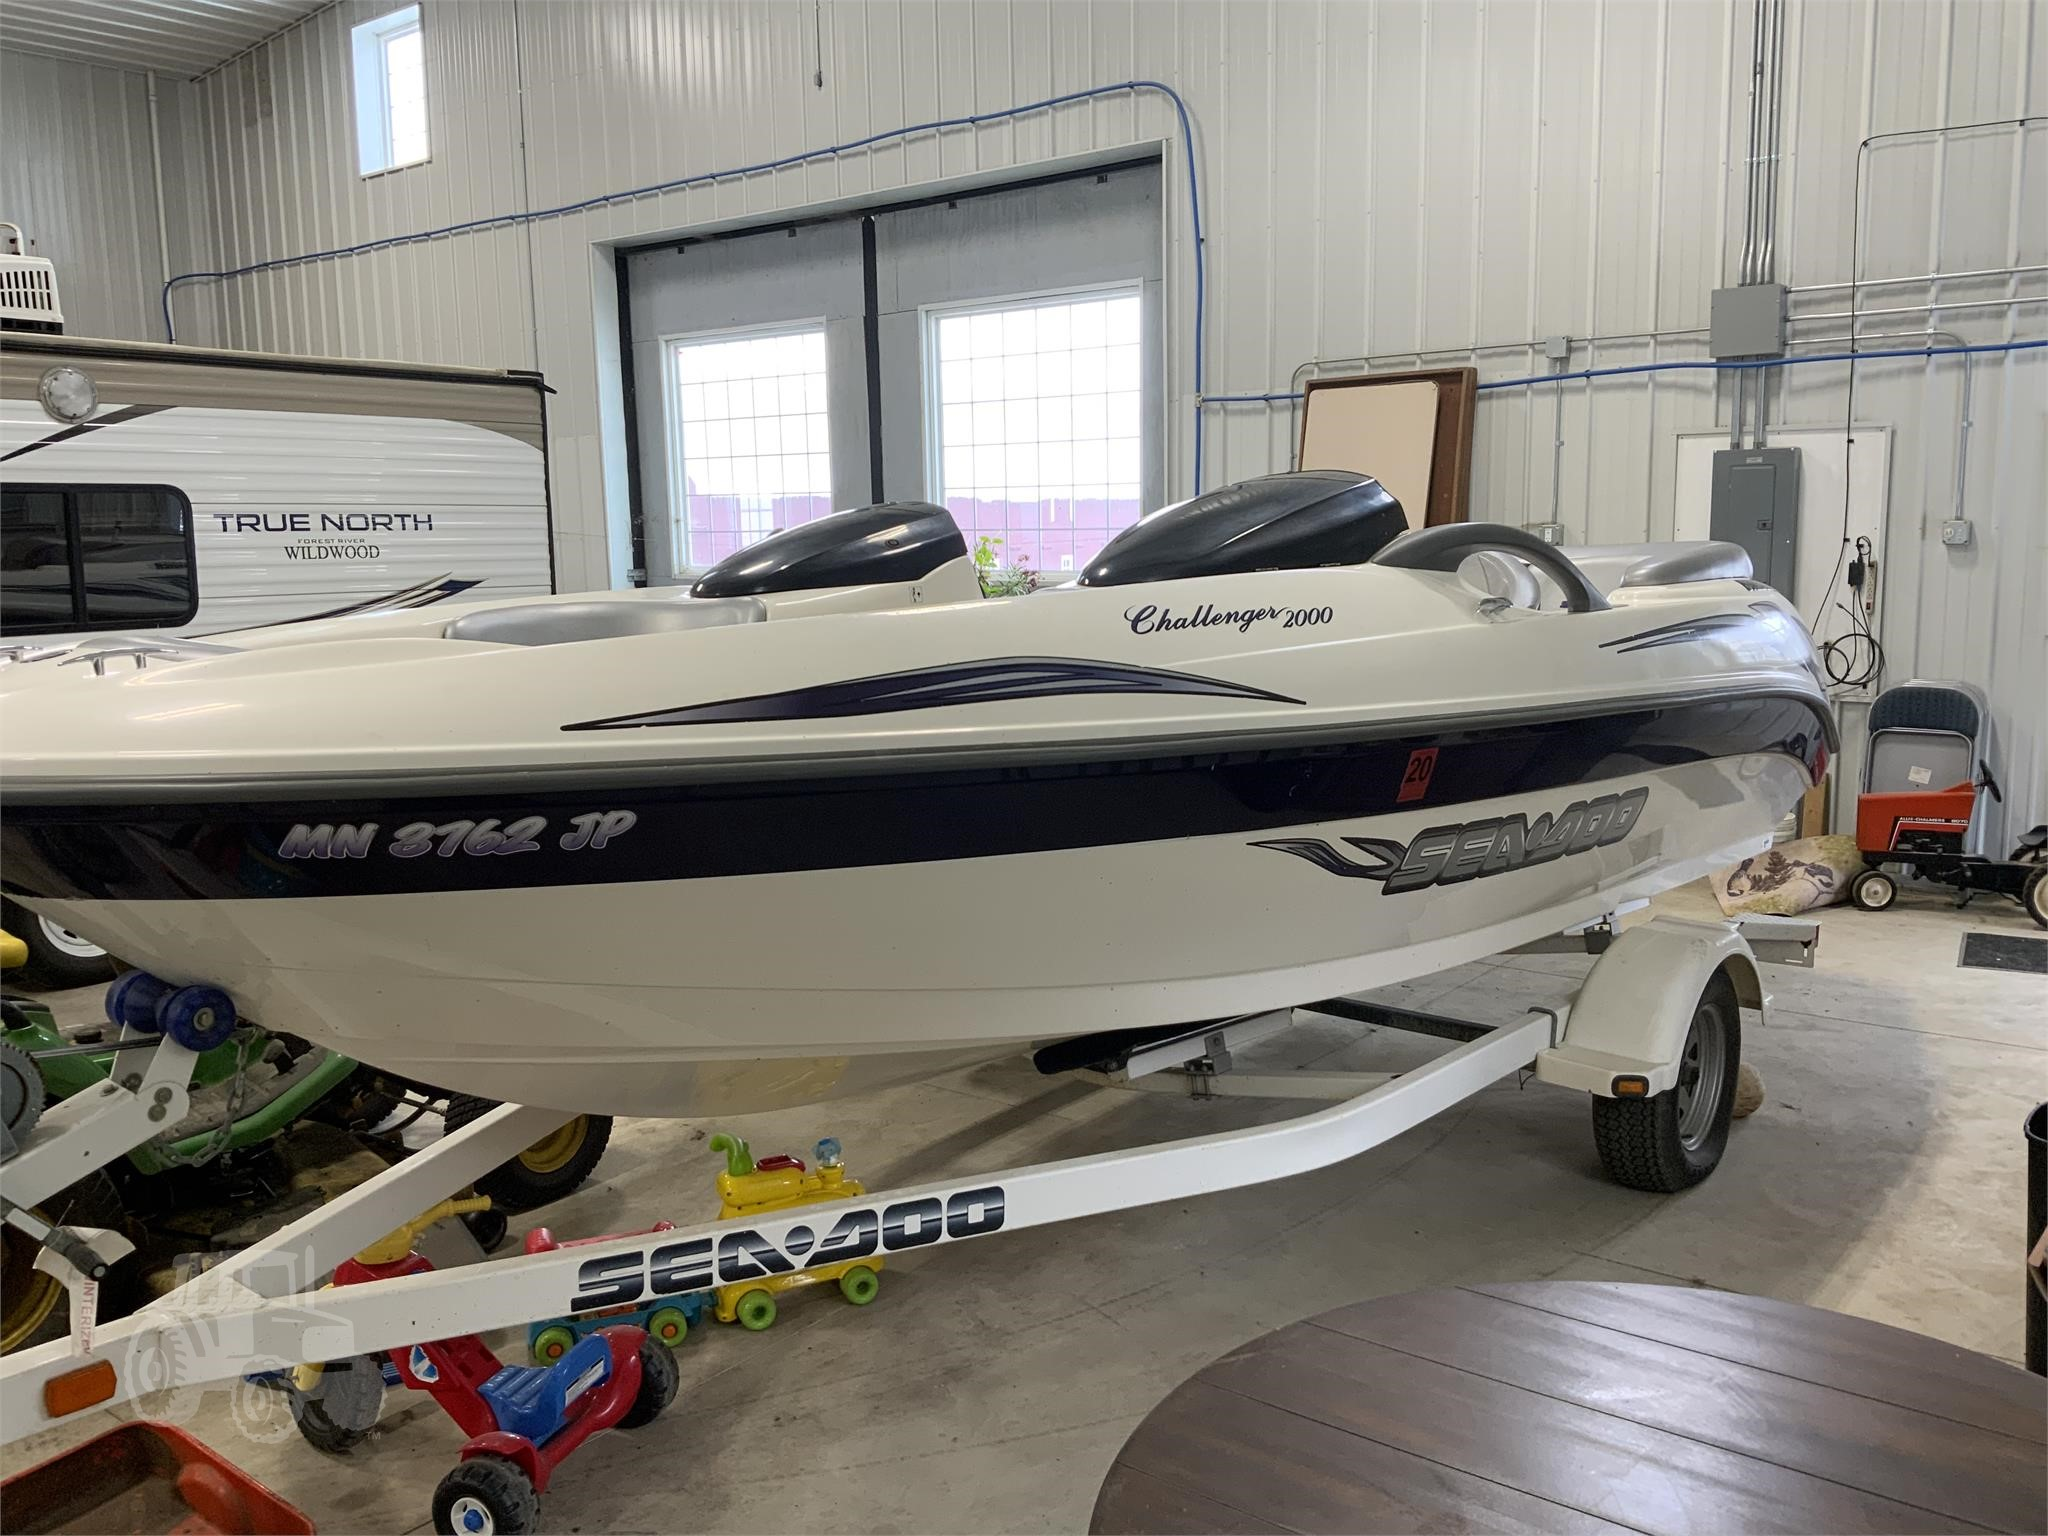 Seadoo Other Items For Sale 9 Listings Tractorhouse Com Page 1 Of 1